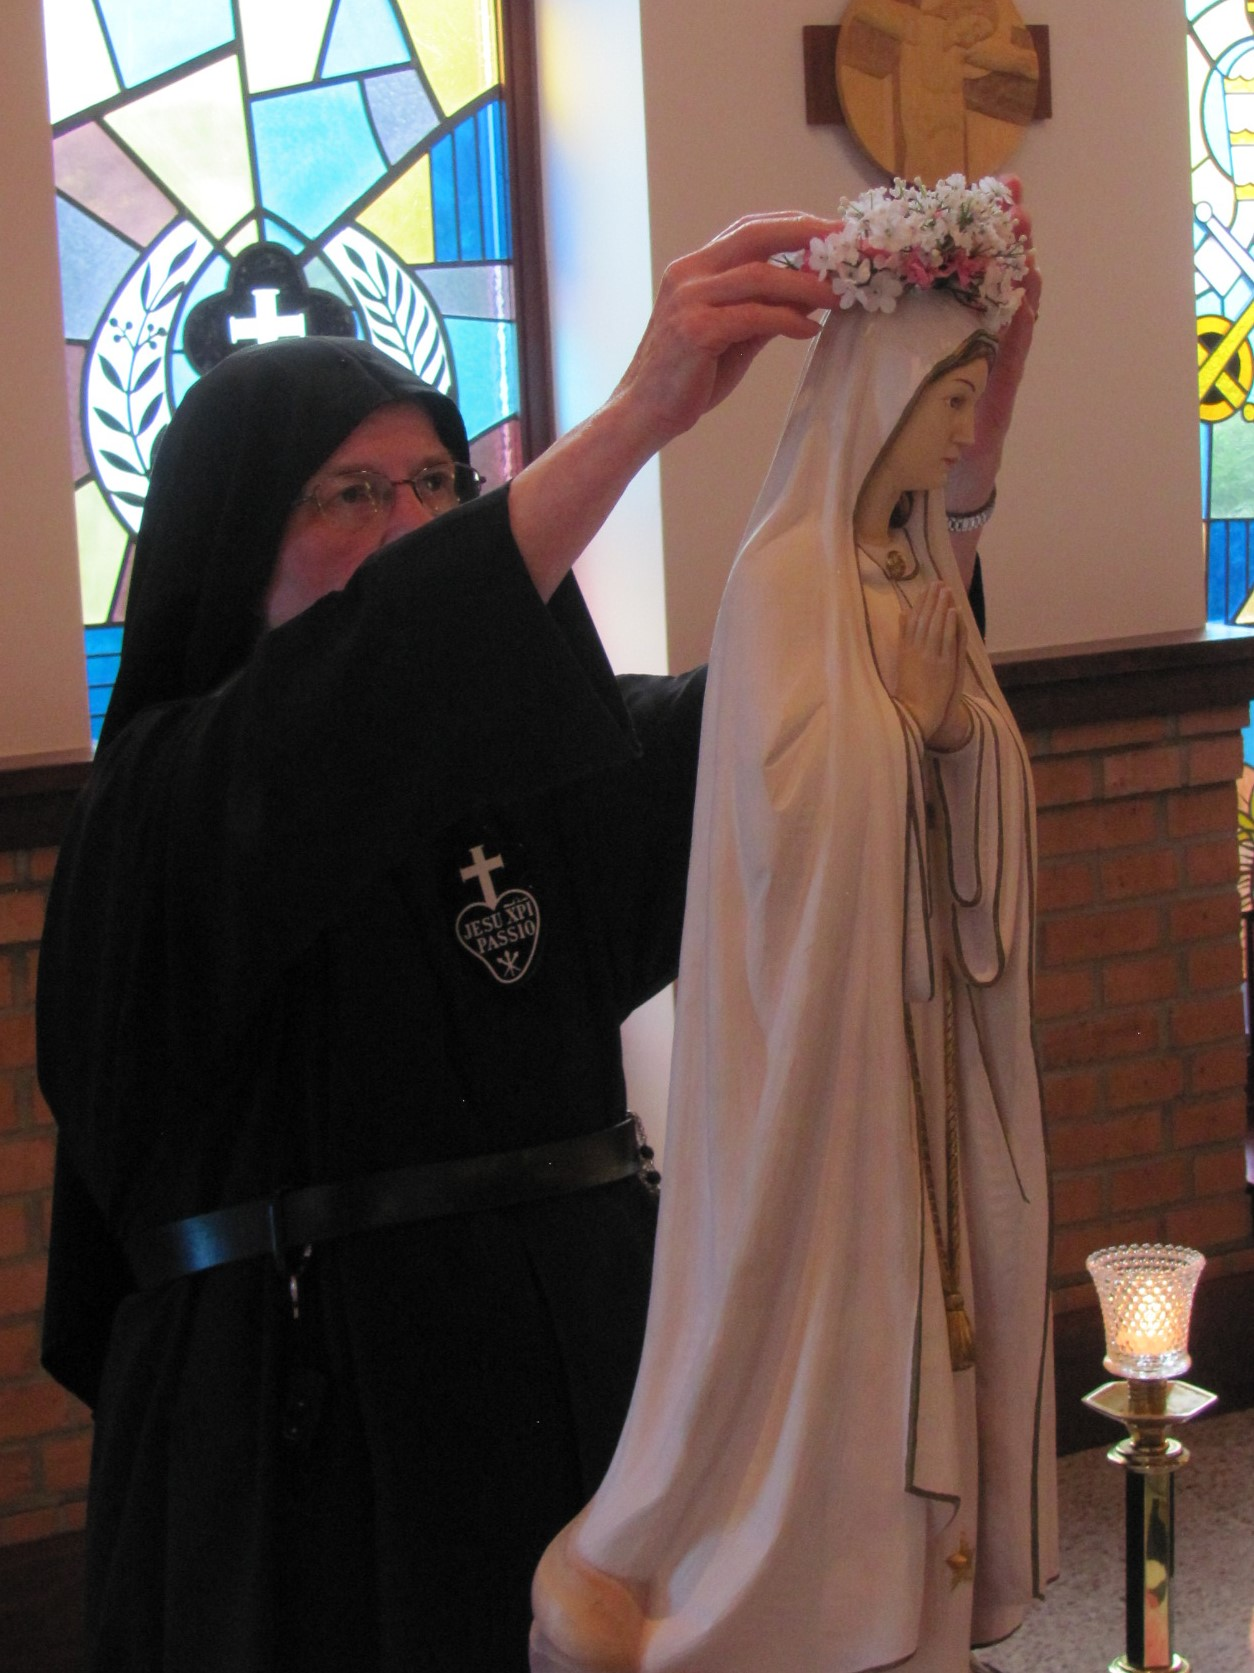 Sr. Mary Agnes crowns Our Lady of Fatima near the sanctuary in the chapel